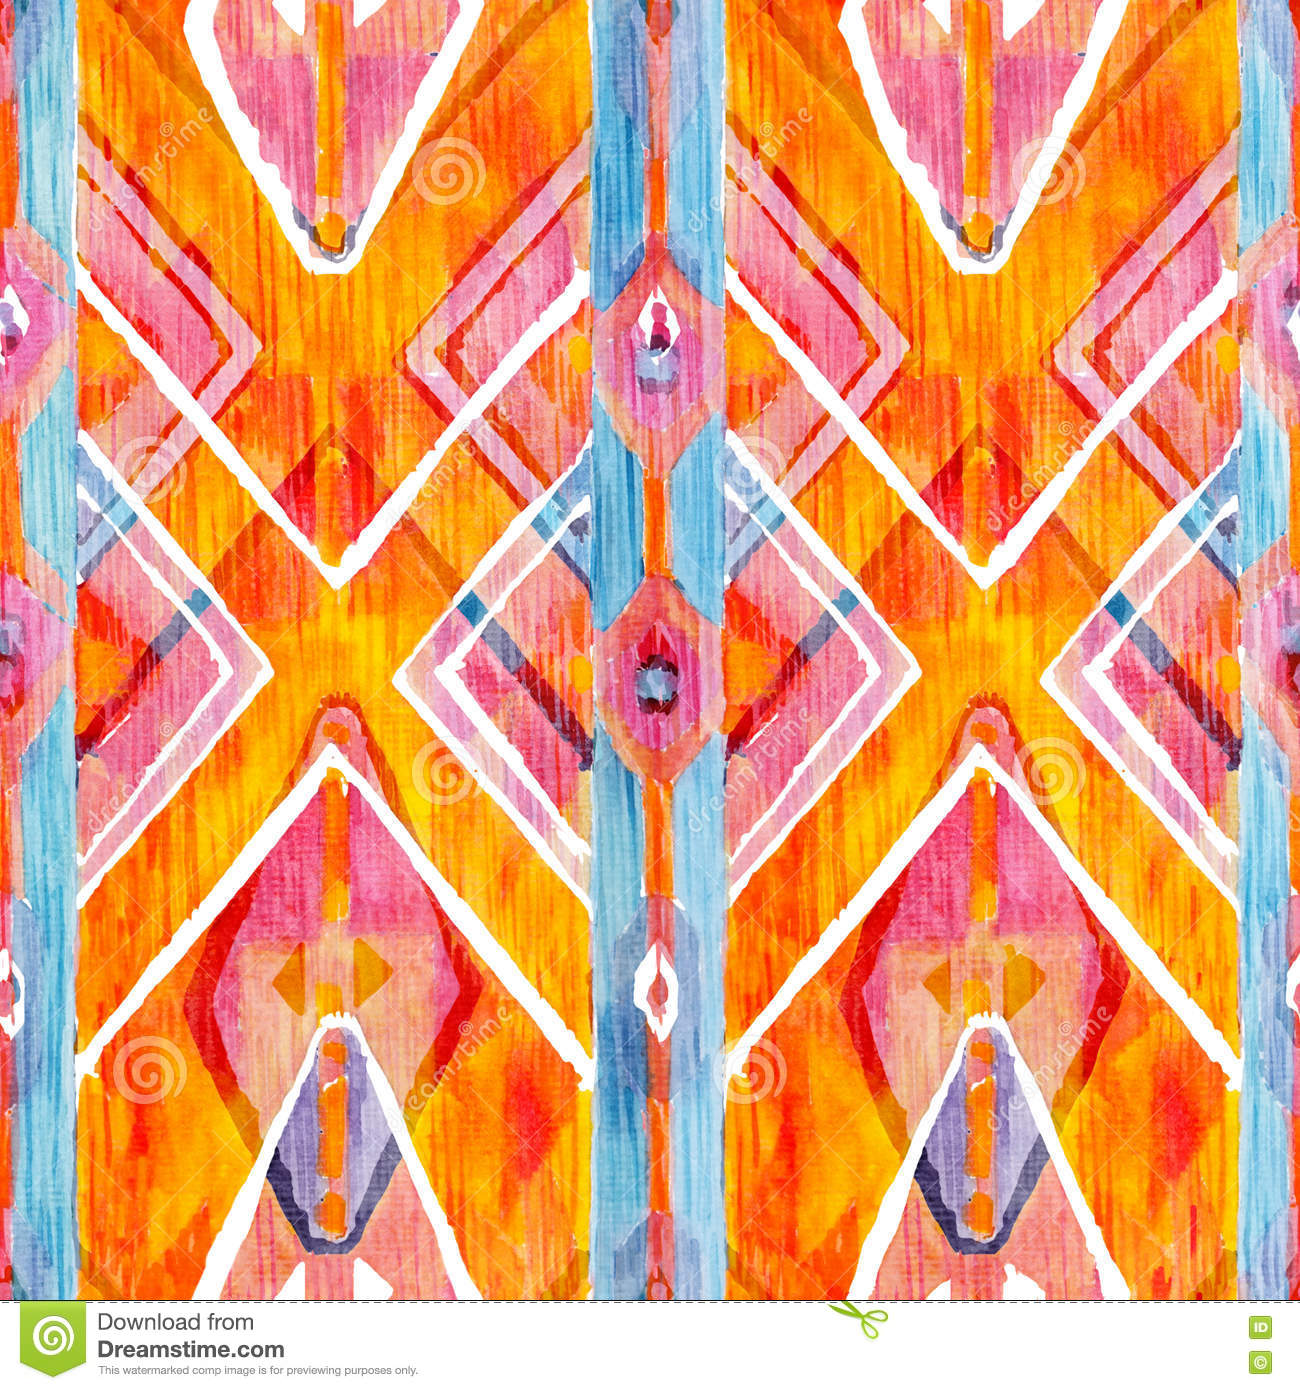 Ikat geometric red and orange authentic pattern in watercolour style. Watercolor seamless .